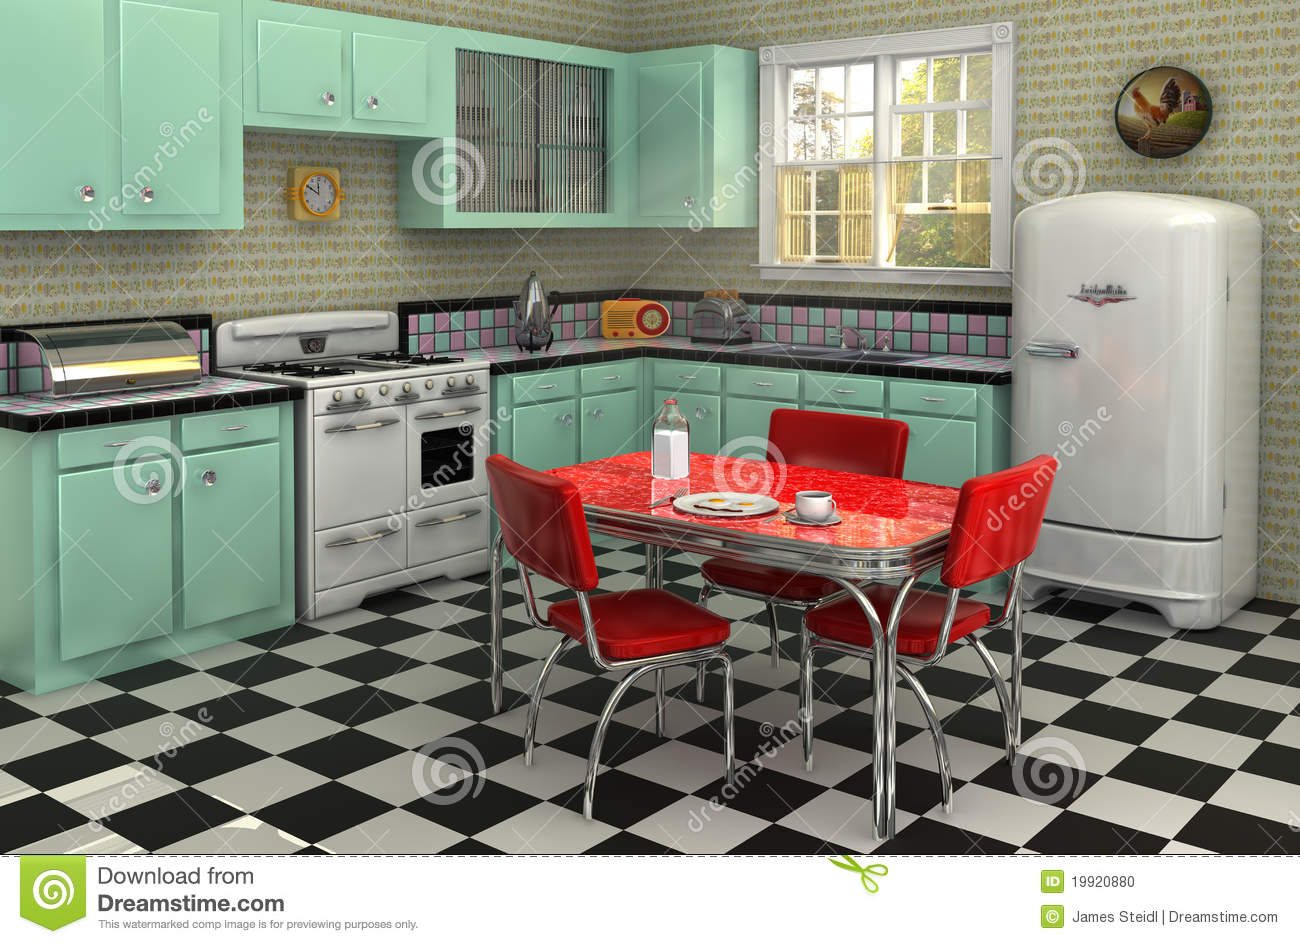 1950 39 s kitchen stock illustration image of american 19920880. Black Bedroom Furniture Sets. Home Design Ideas